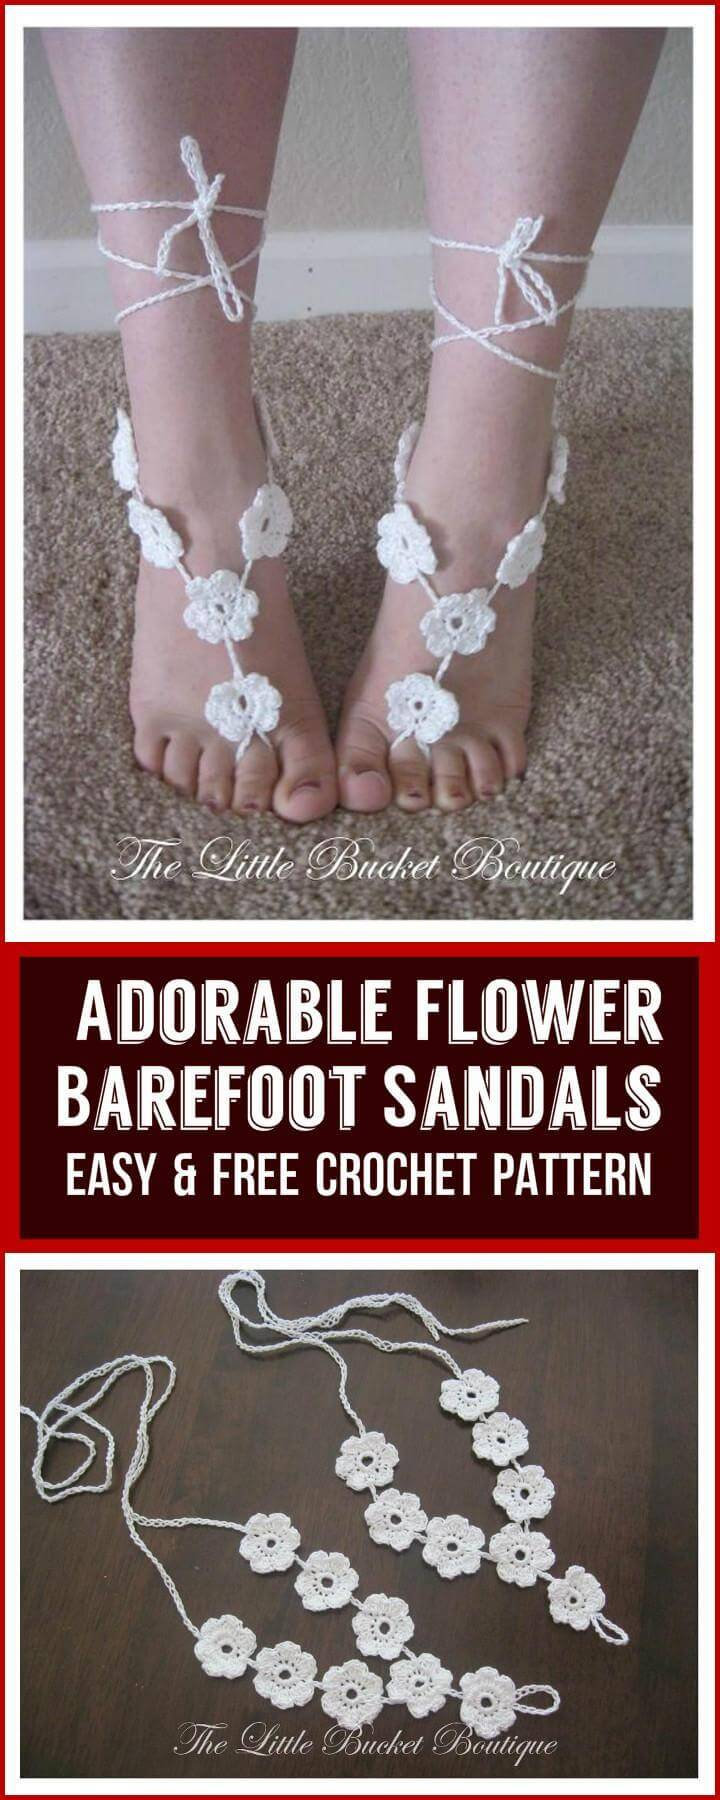 Adorable Flower  Barefoot Sandals Easy  Free Crochet Pattern